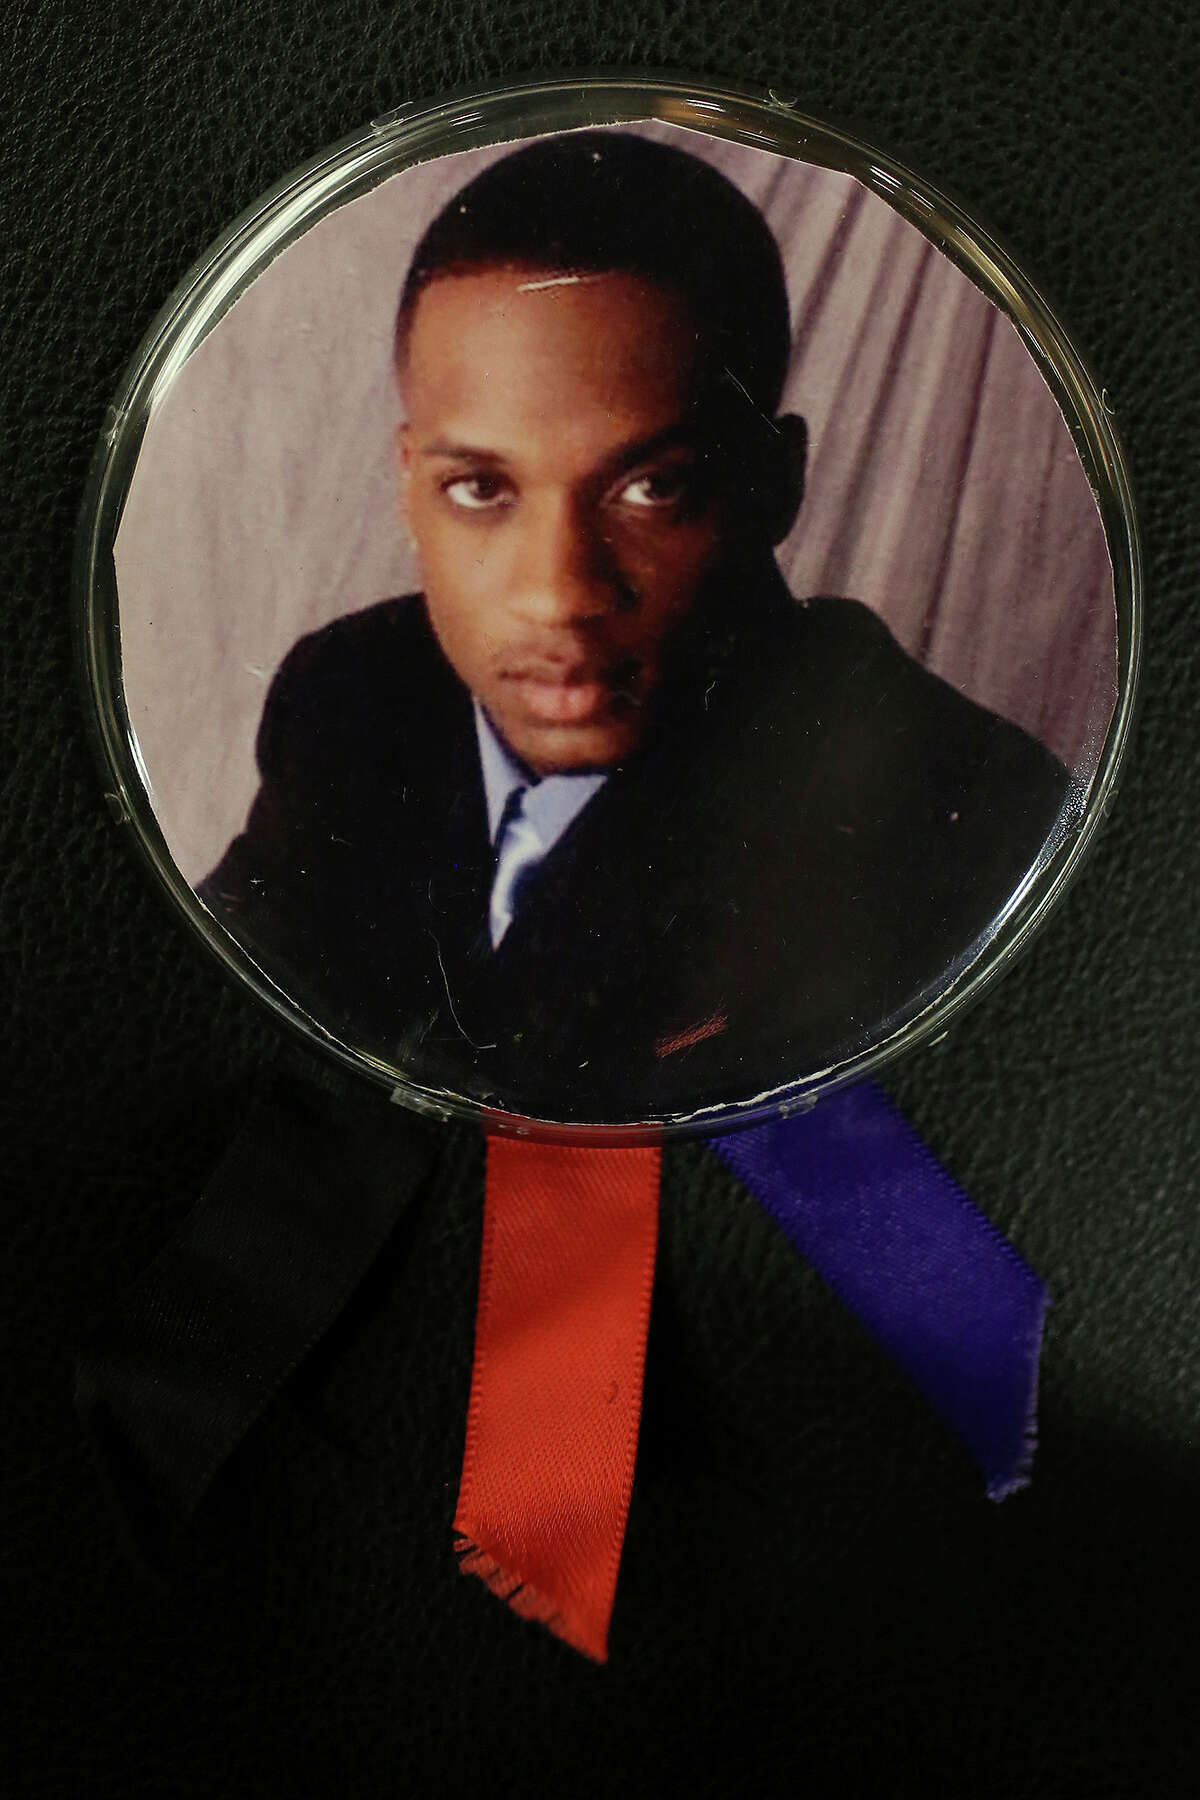 A button with a photograph of Samuel Johnson, Jr. carried by his mother, Stephanie Johnson, during the trial of Bernard